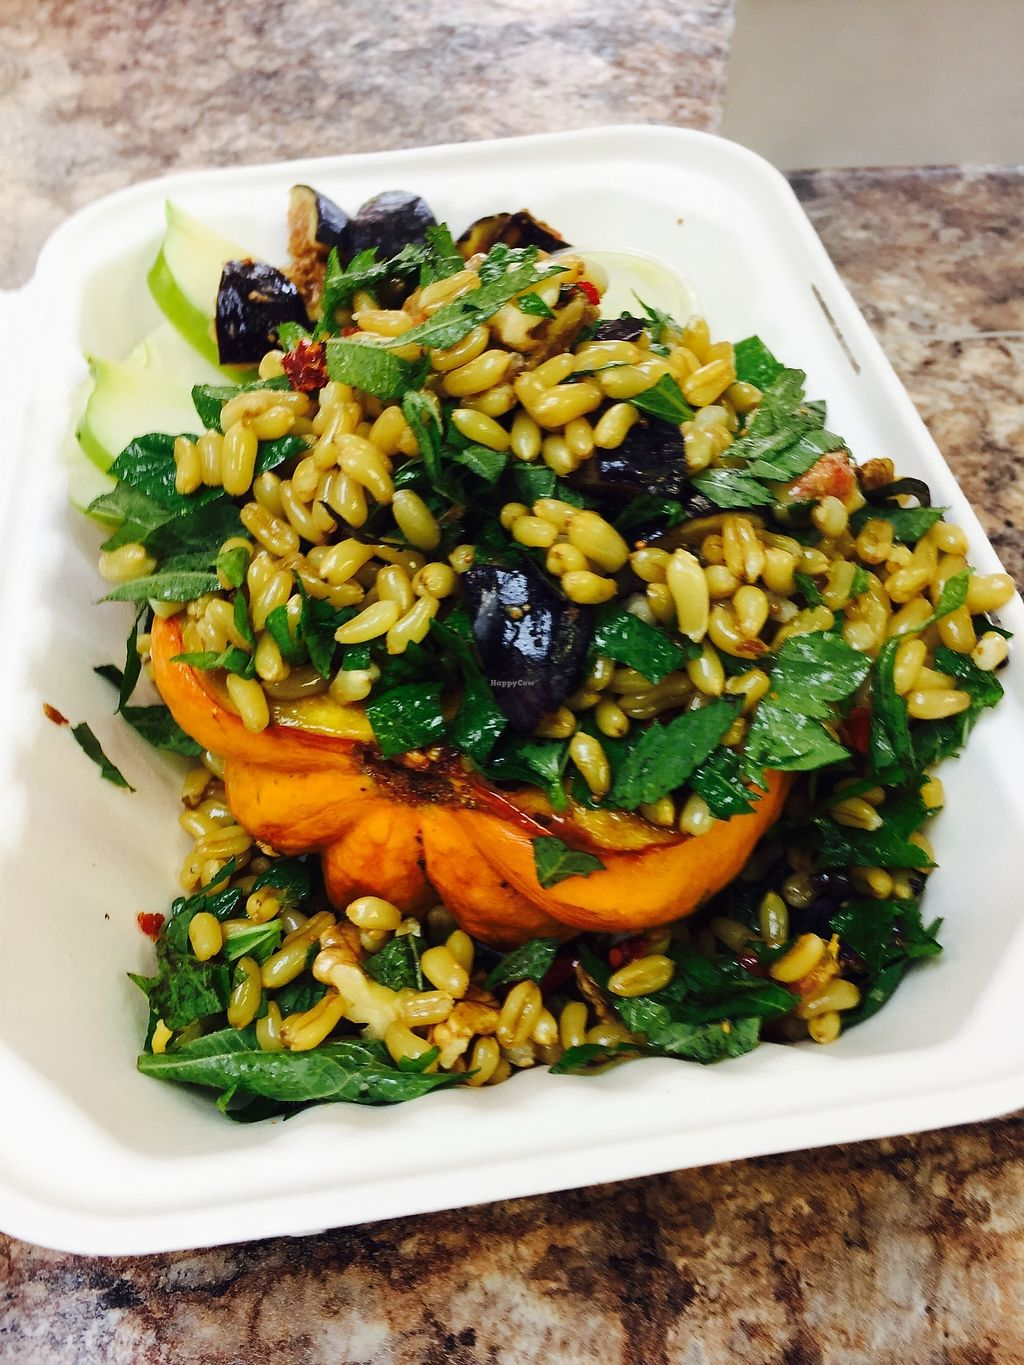 """Photo of Clean Roots Vegetarian Cuisine  by <a href=""""/members/profile/JanLandis"""">JanLandis</a> <br/>Acorn squash salad <br/> August 4, 2017  - <a href='/contact/abuse/image/92842/288445'>Report</a>"""